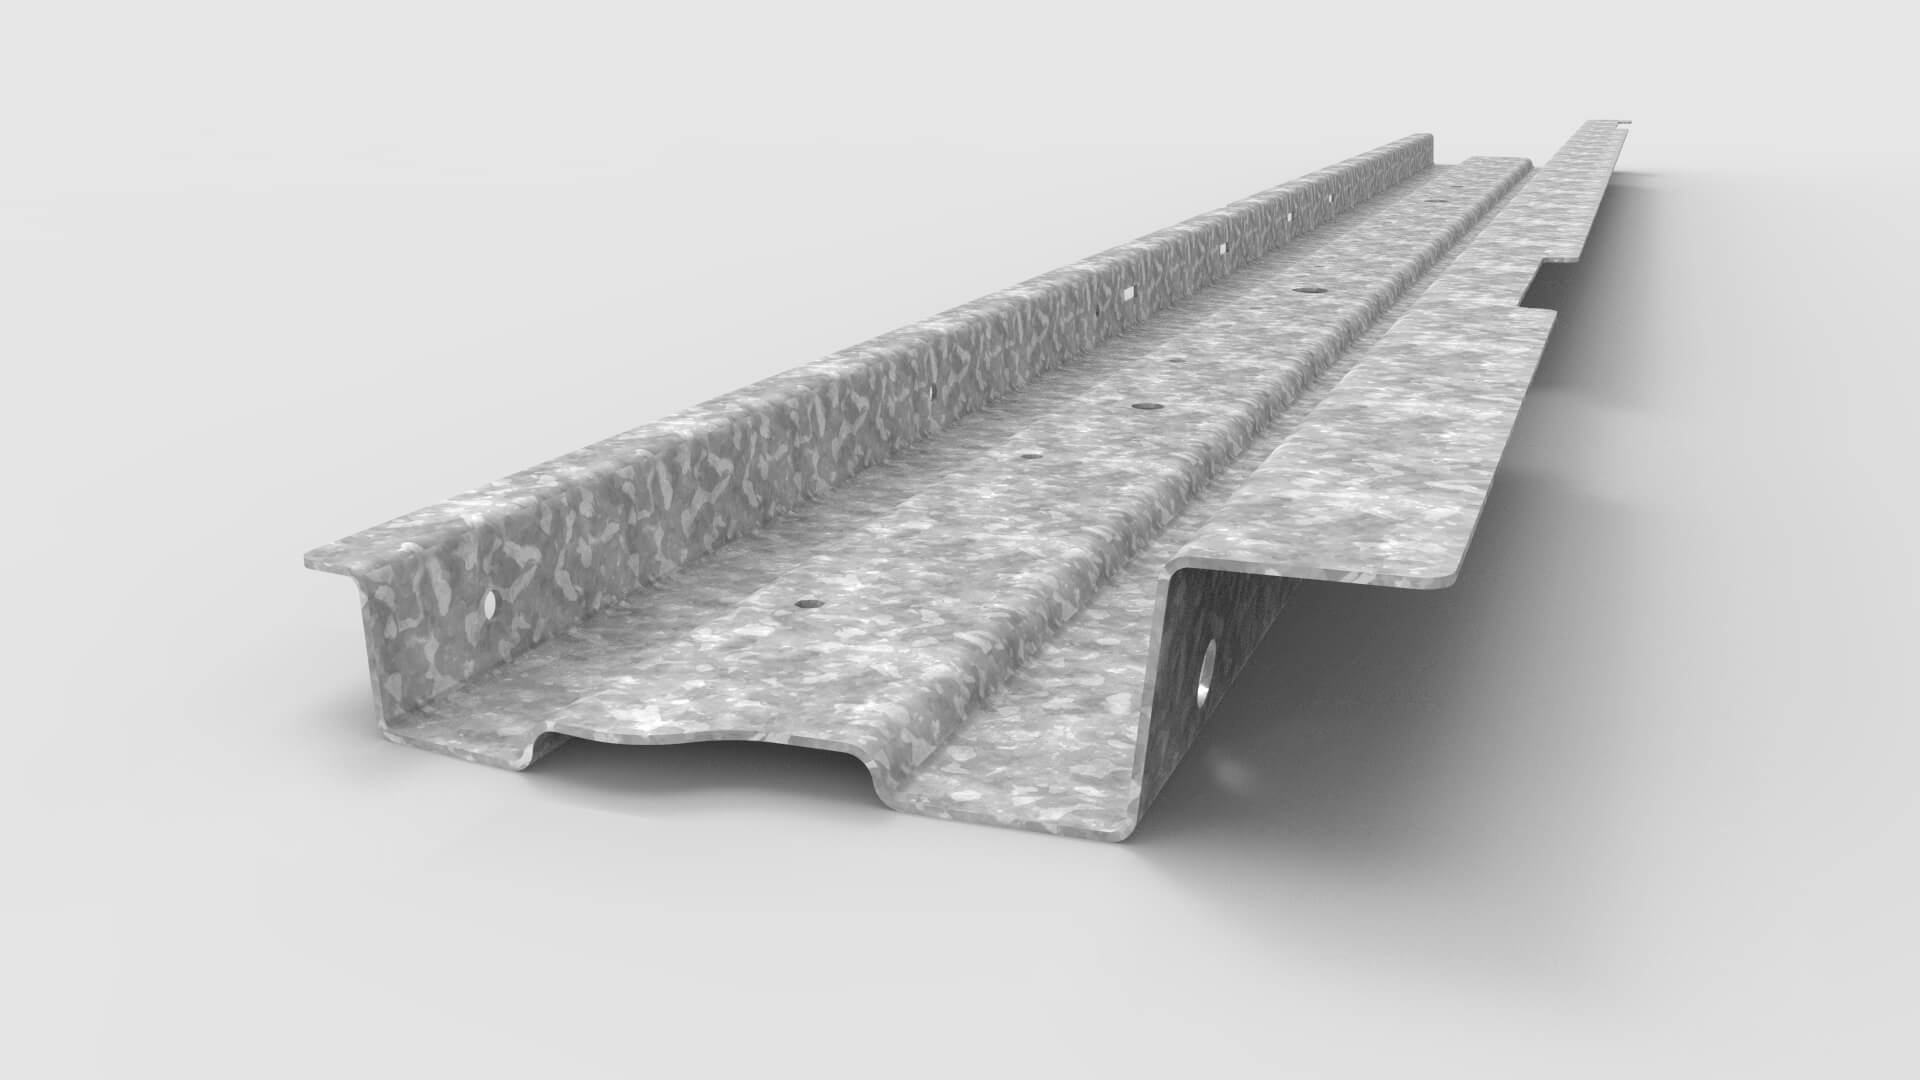 picture of a rocker panel automotive product